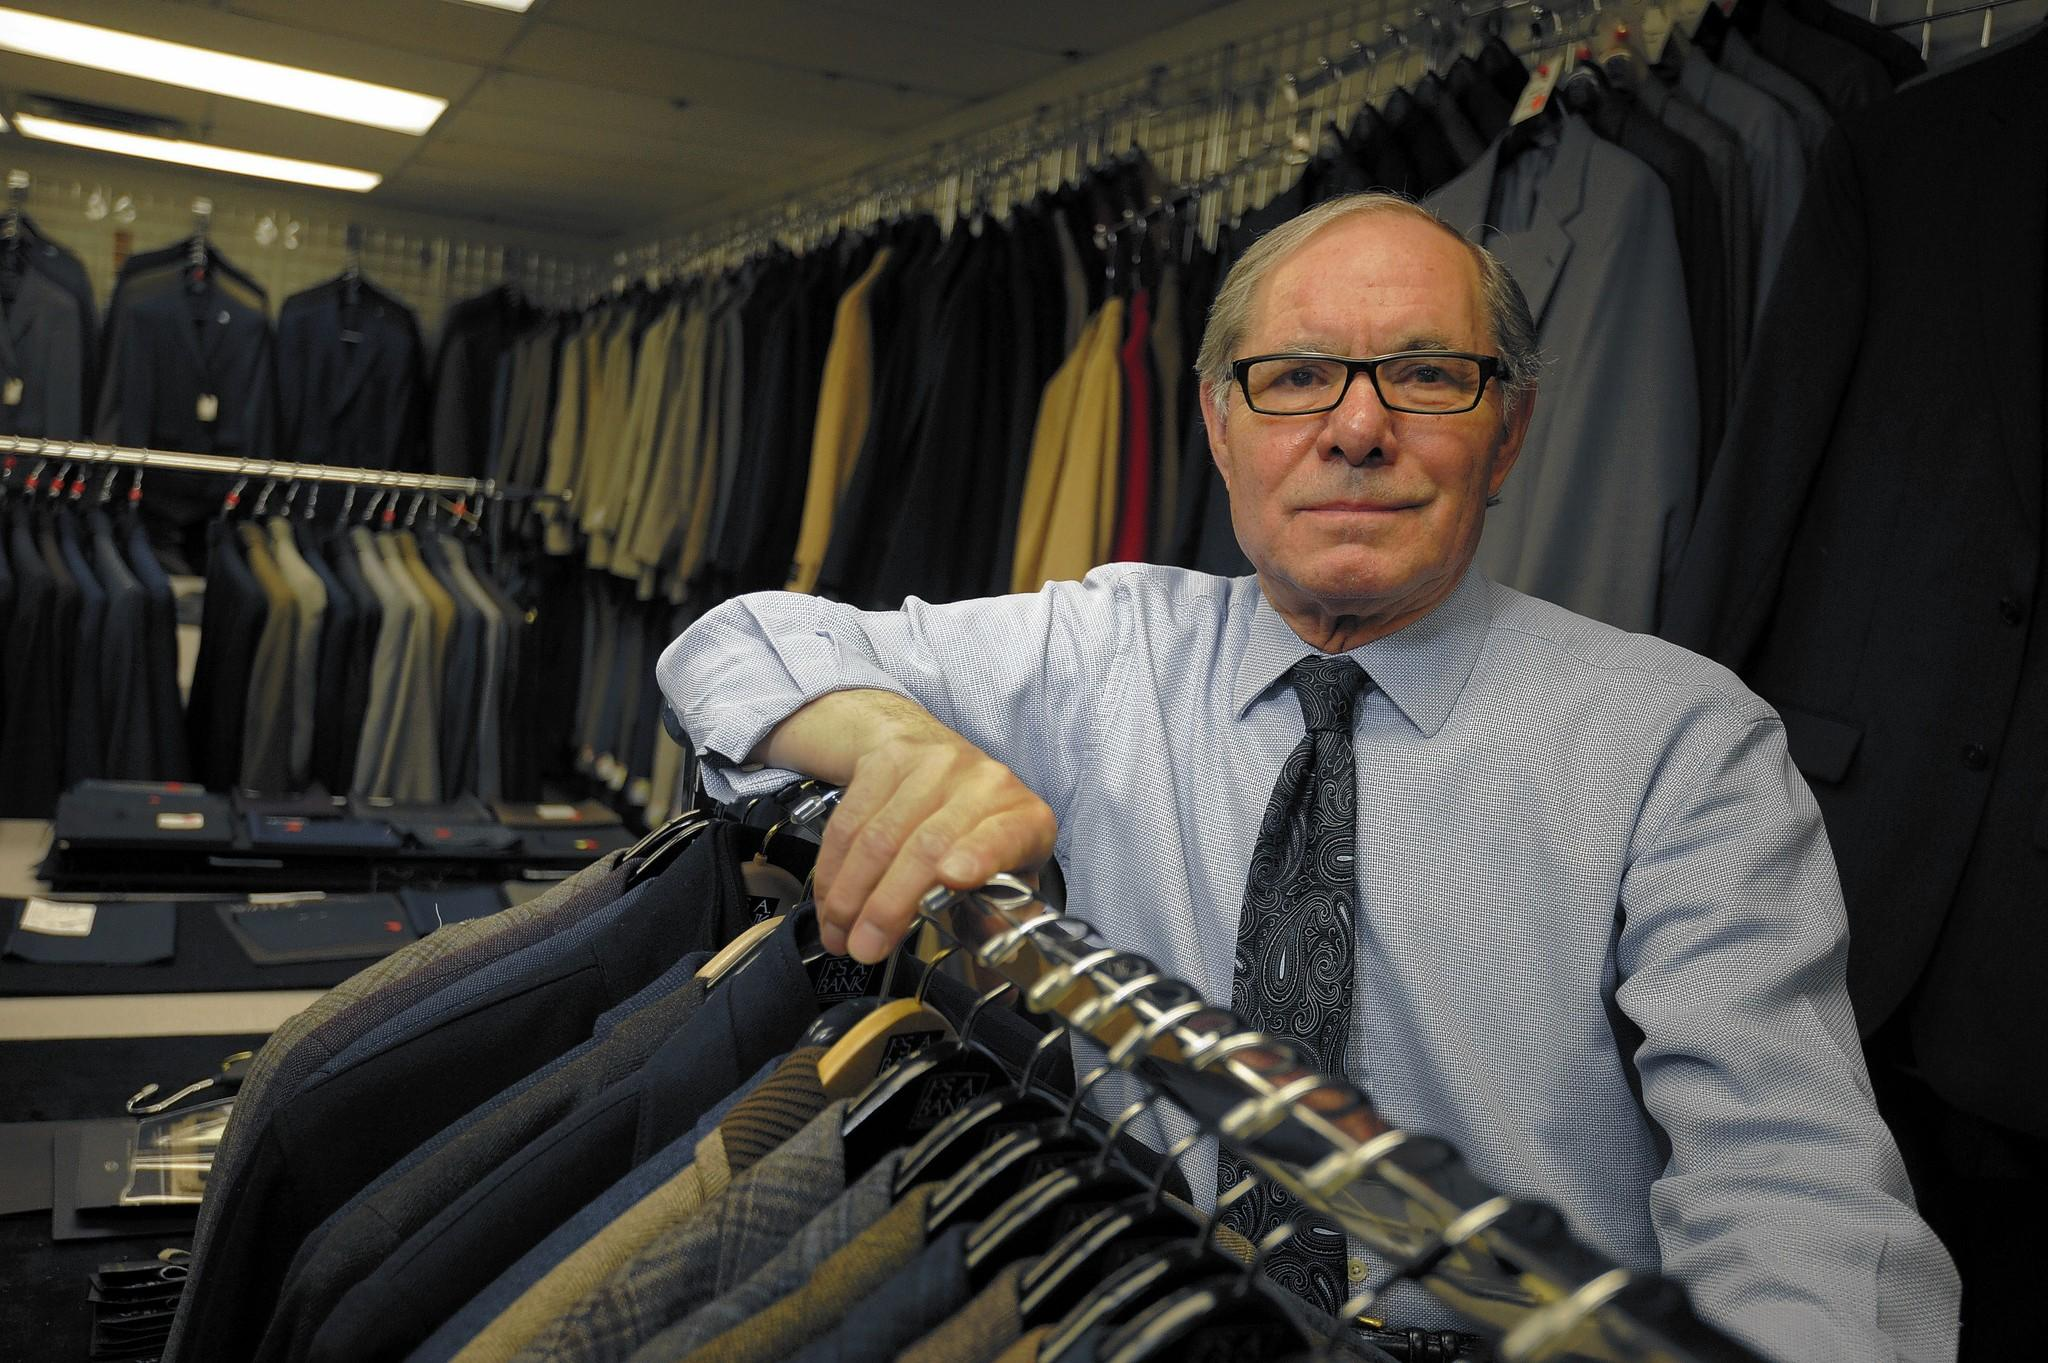 John Ciambruschini is the master tailor at Jos. A. Bank Clothiers Inc.